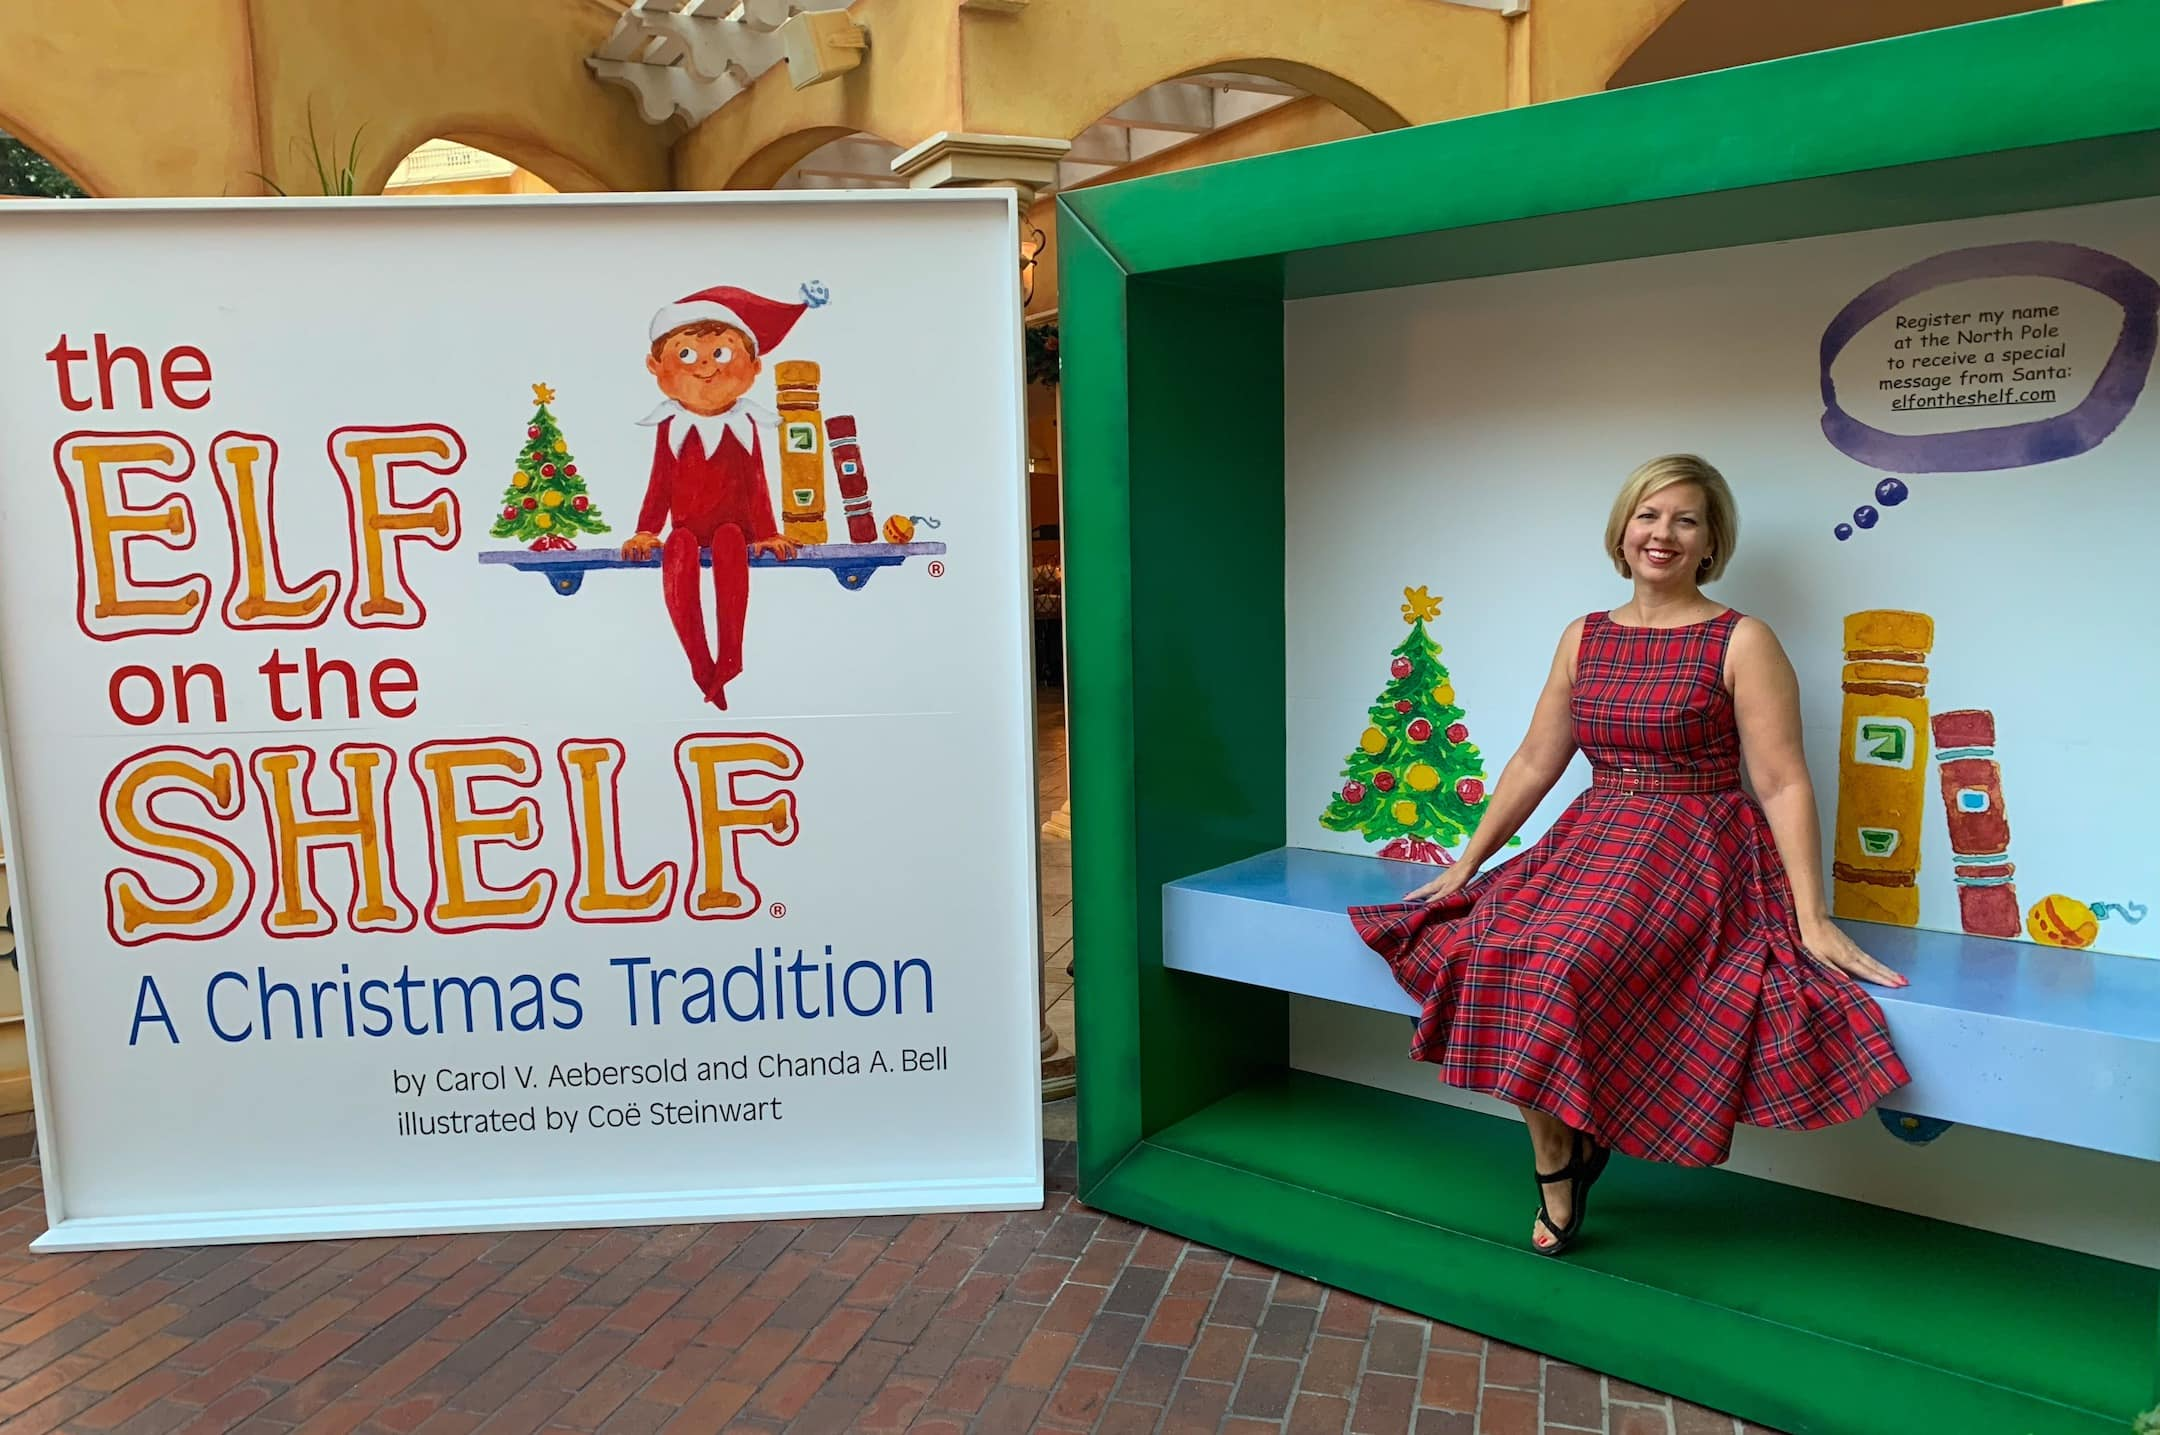 Gaylord Palms ICE 2018 A Christmas Story Orlando elf on the shelf character at breakfast